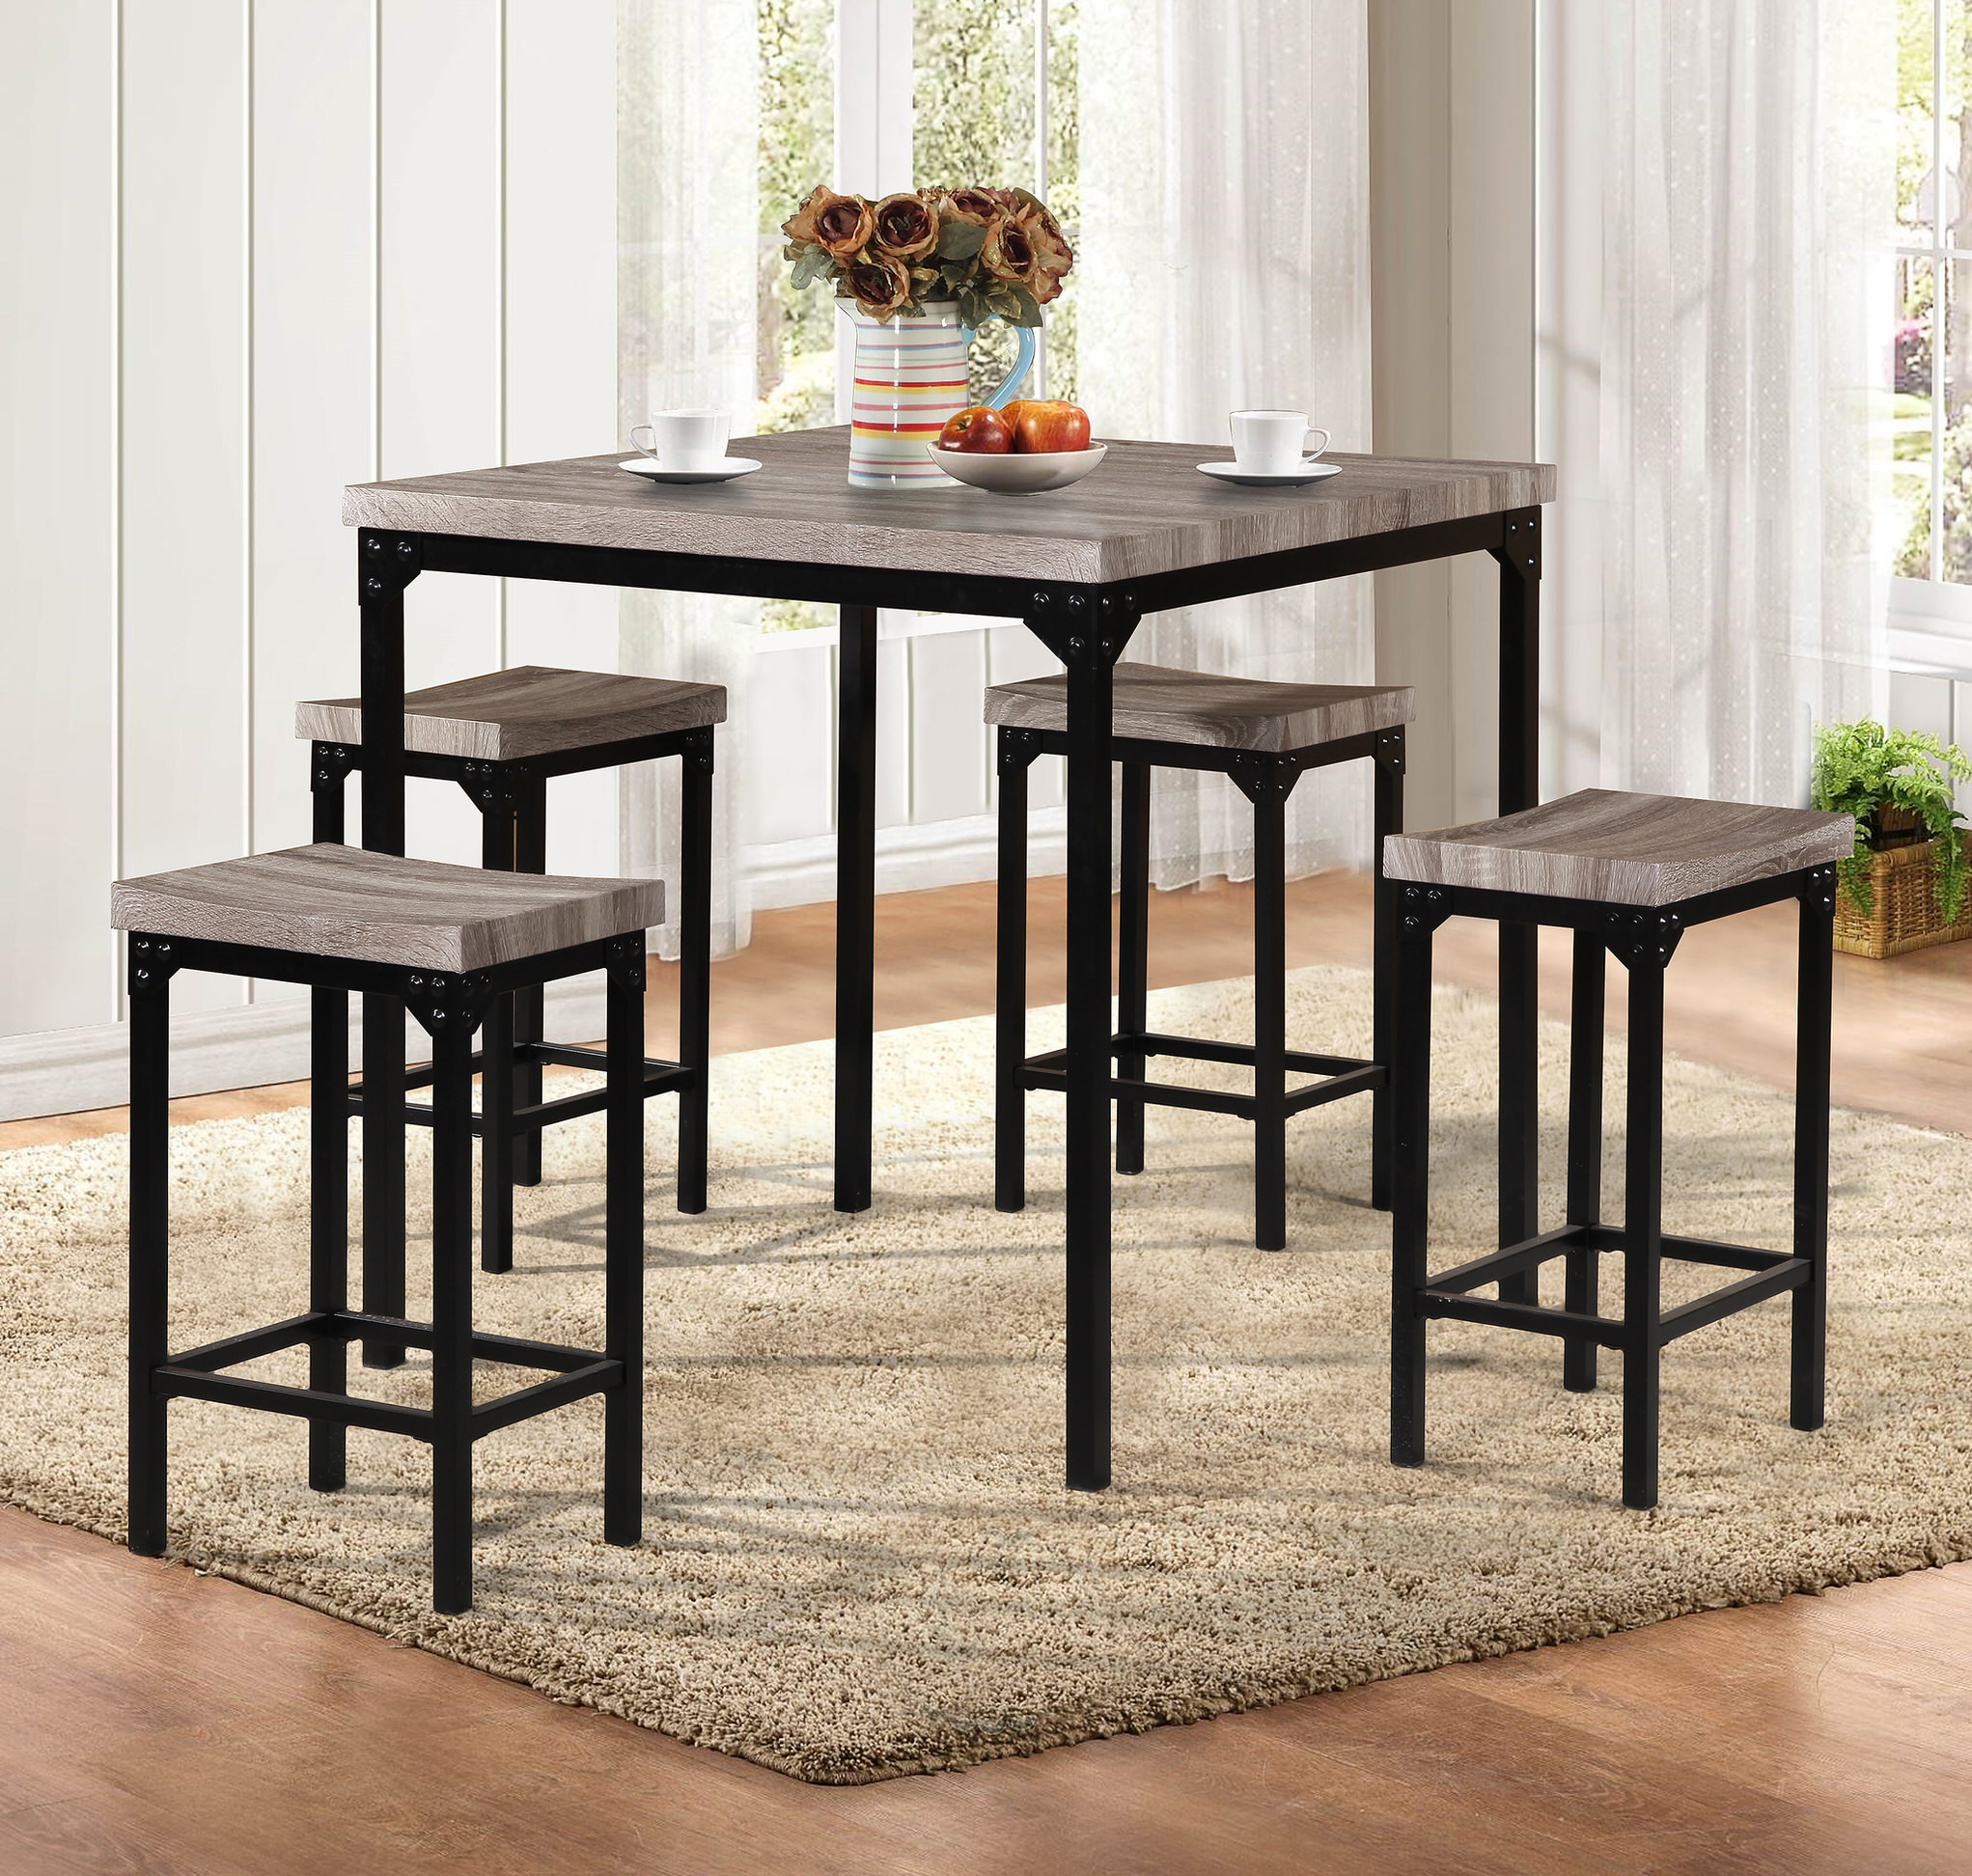 & F2141 5 Pcs Counter Height Table Set by Poundex